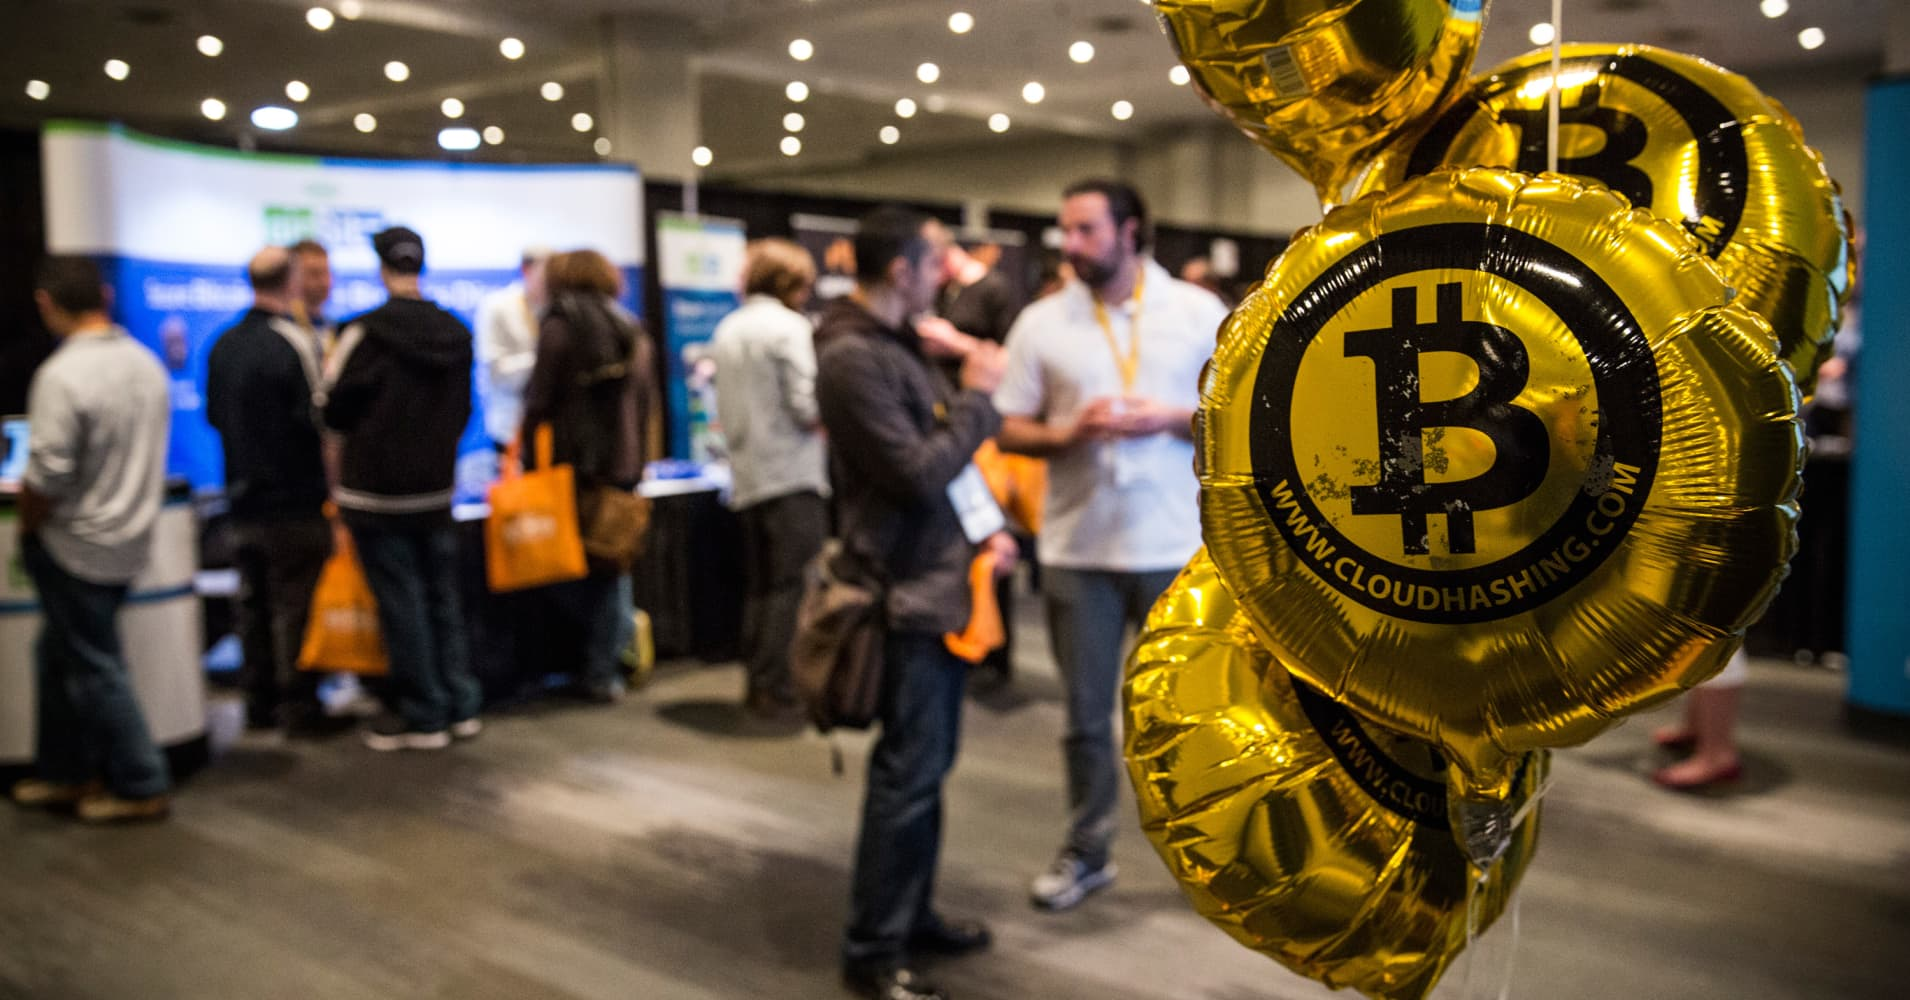 People Attend A Bitcoin Conference In New York (file Photo)